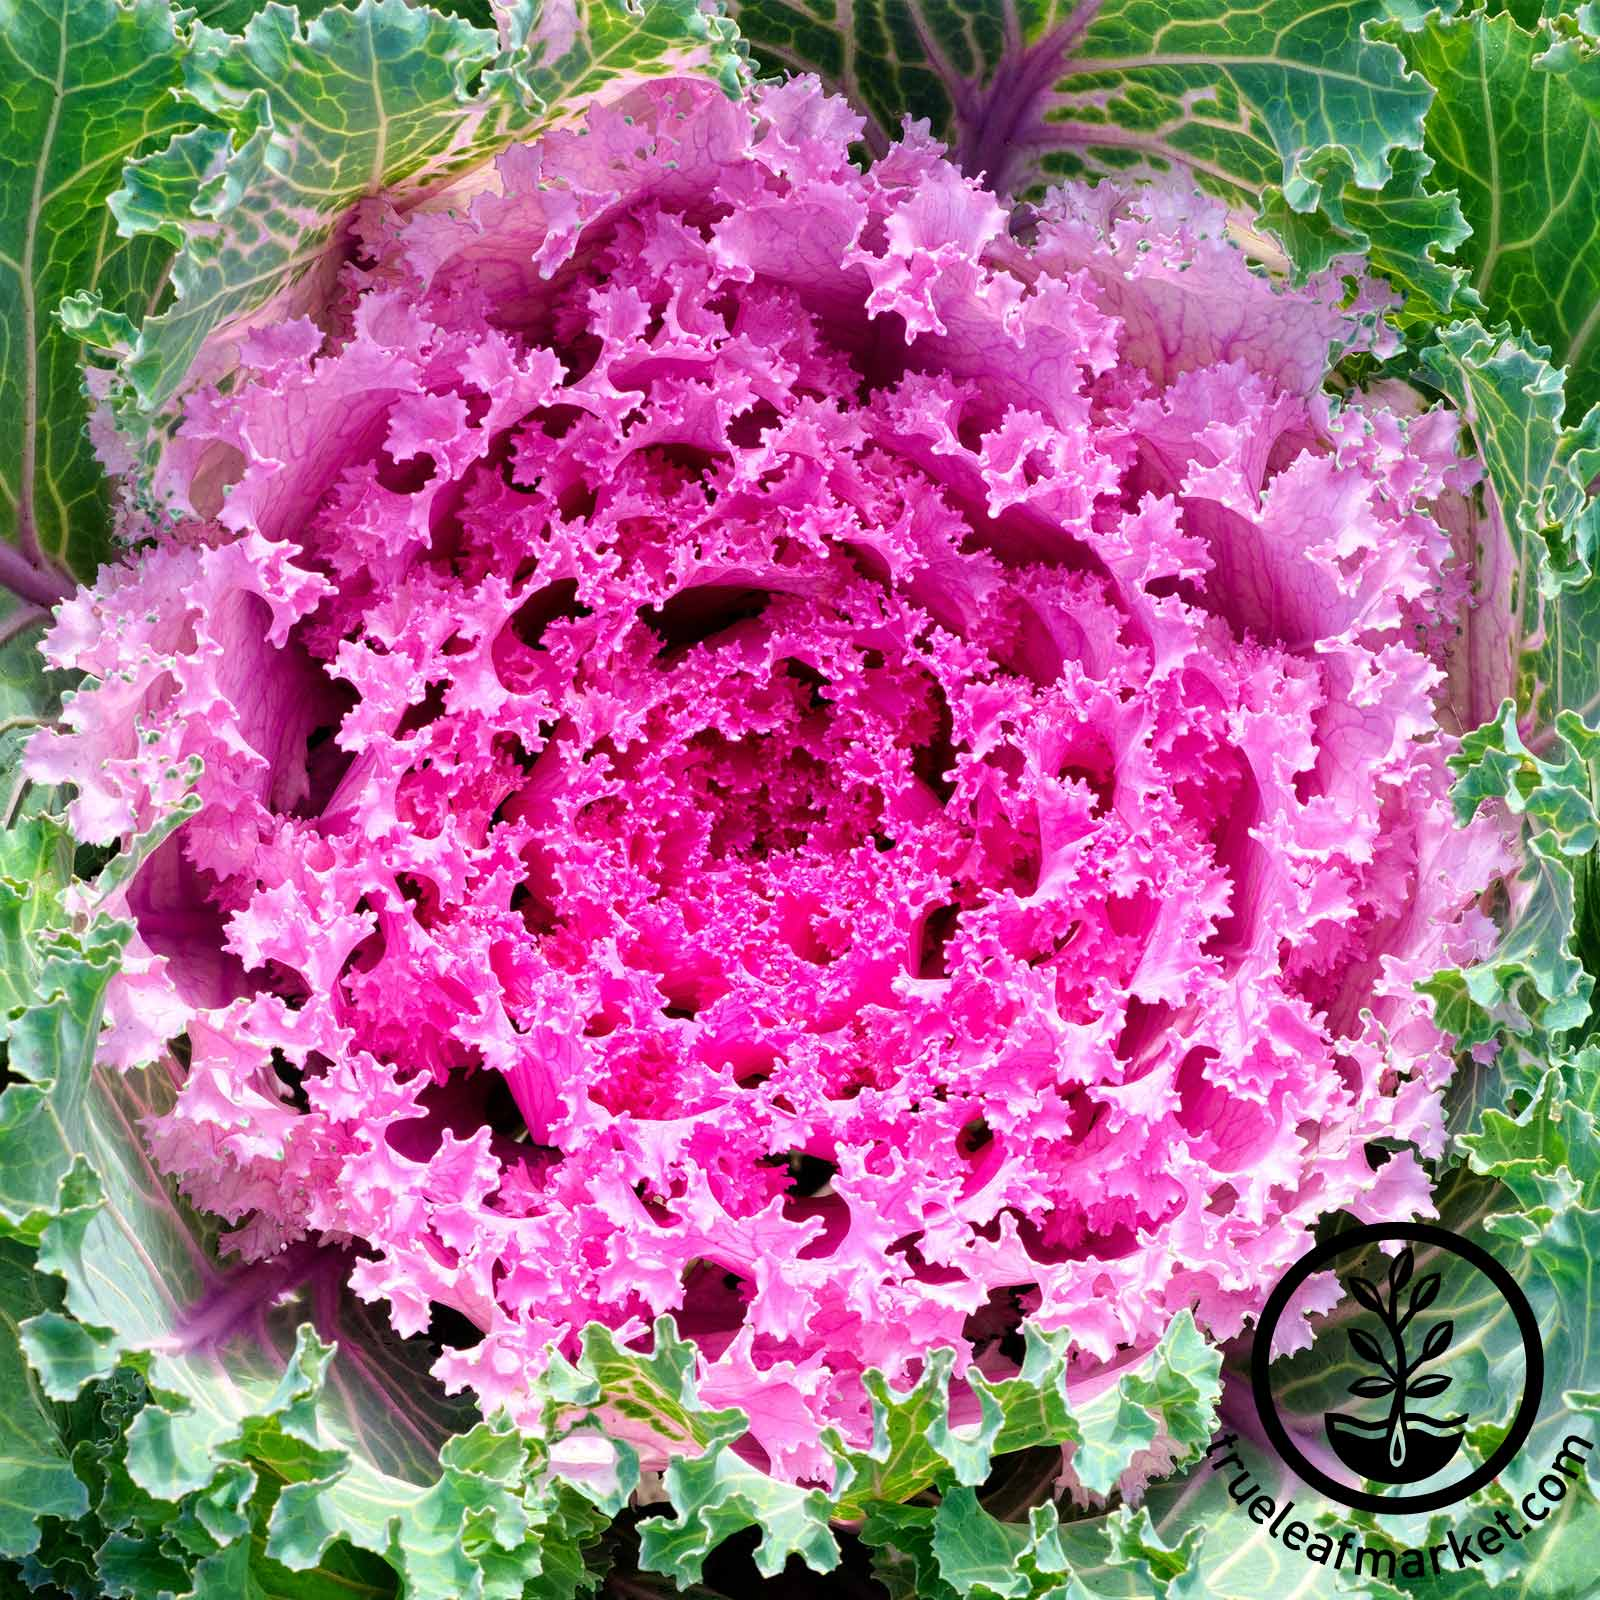 Flowering Kale Kamome Series Pink Seed